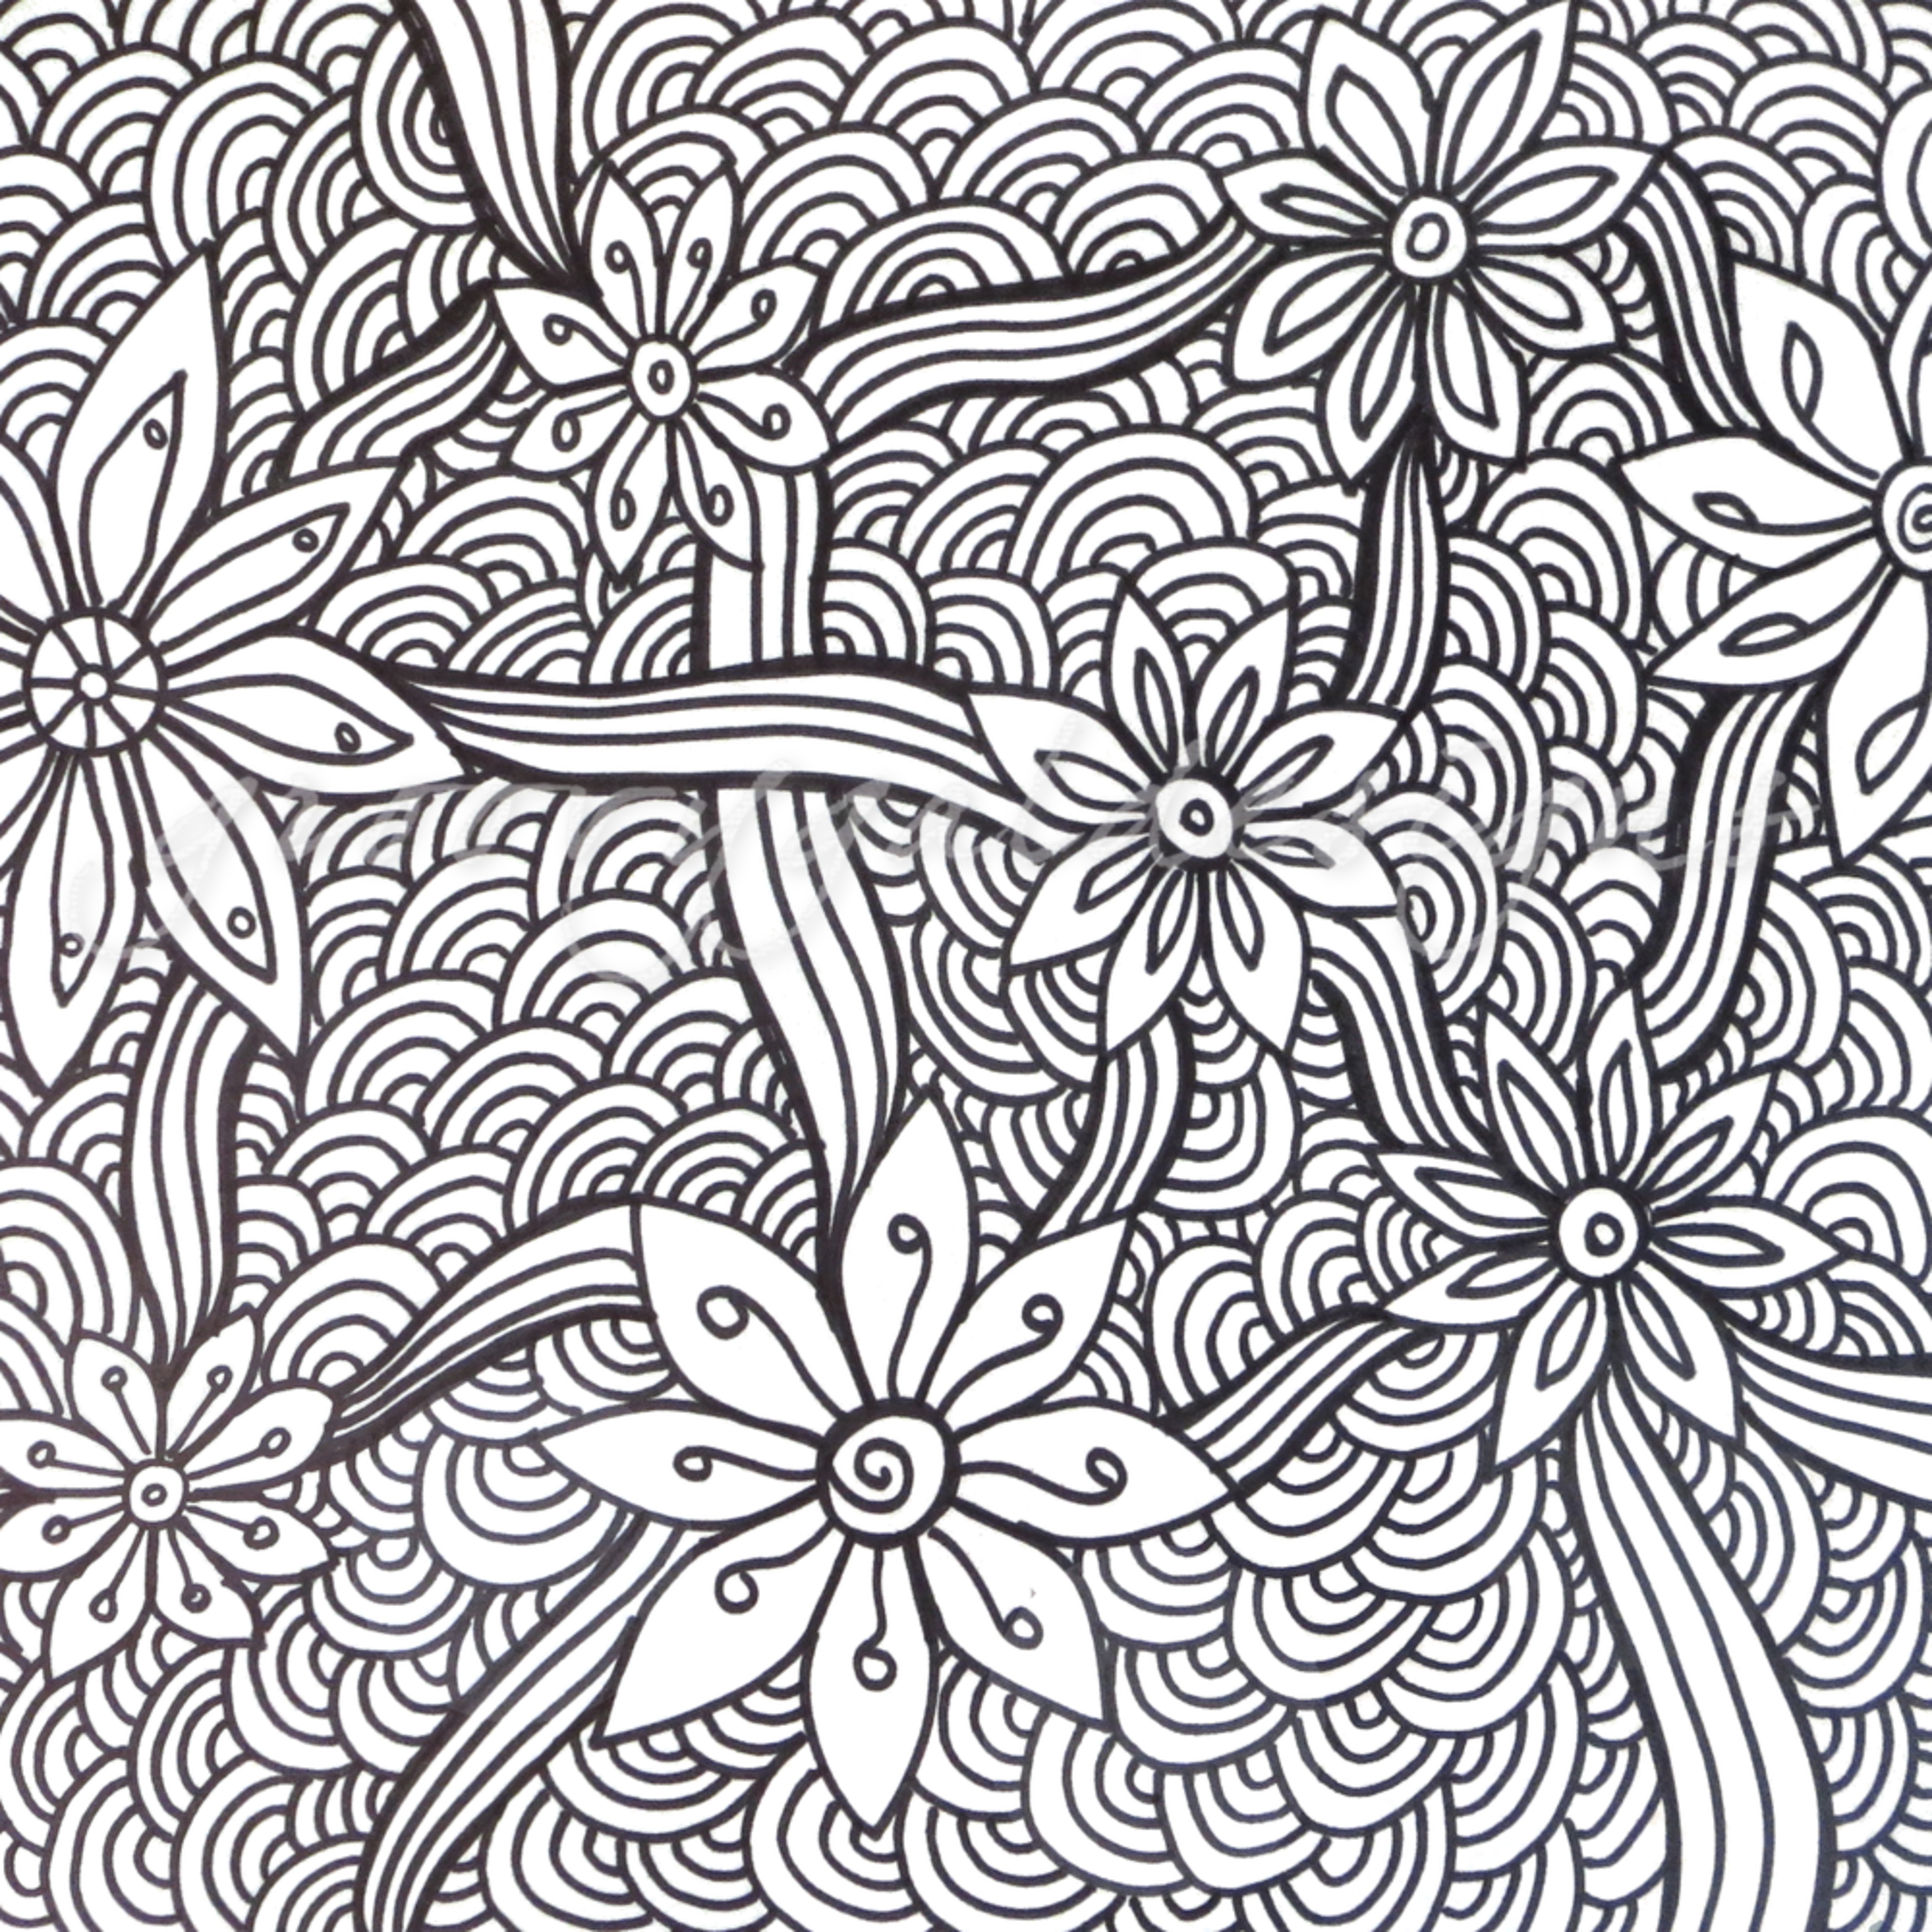 Flowers and ribbons color it a53g7a